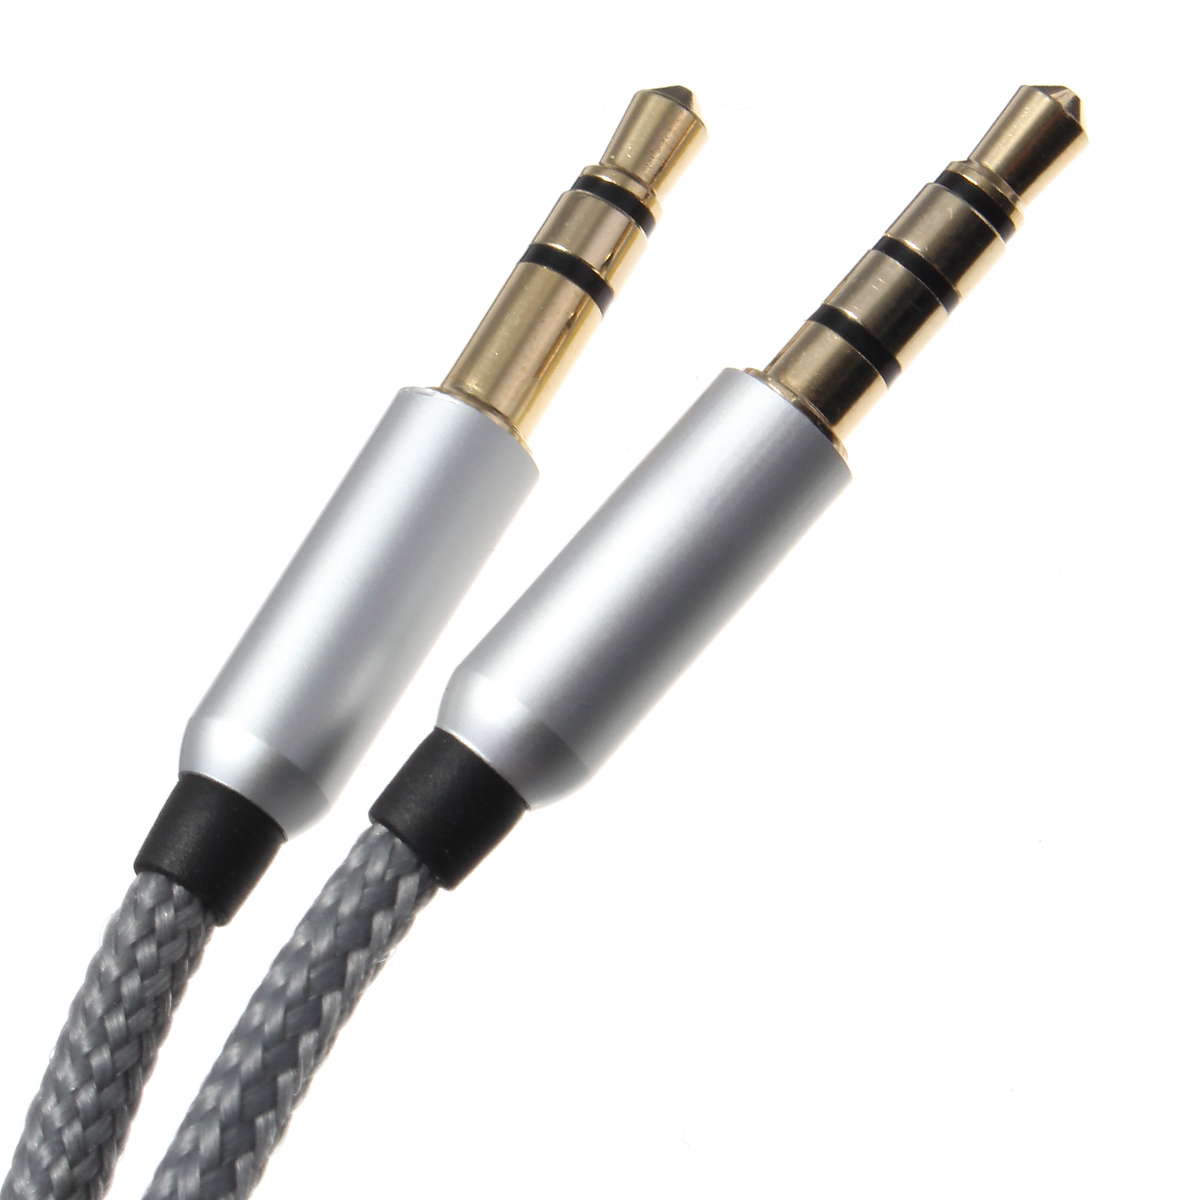 Skullcandy Audio Cable : M mm audio headphone cable with mic for